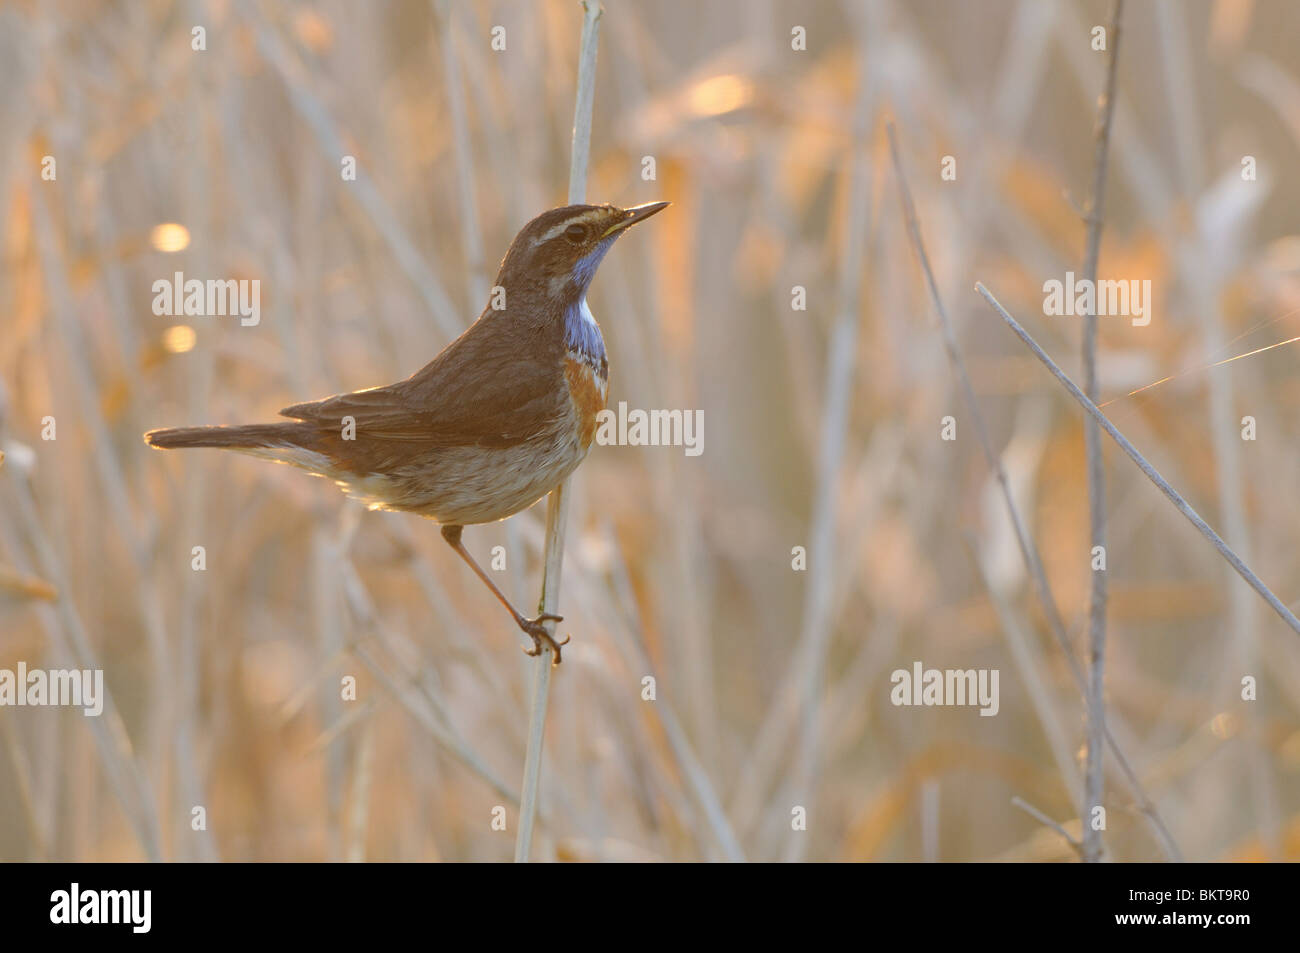 Male Bluethroat on dried stems during sunrise - Stock Image